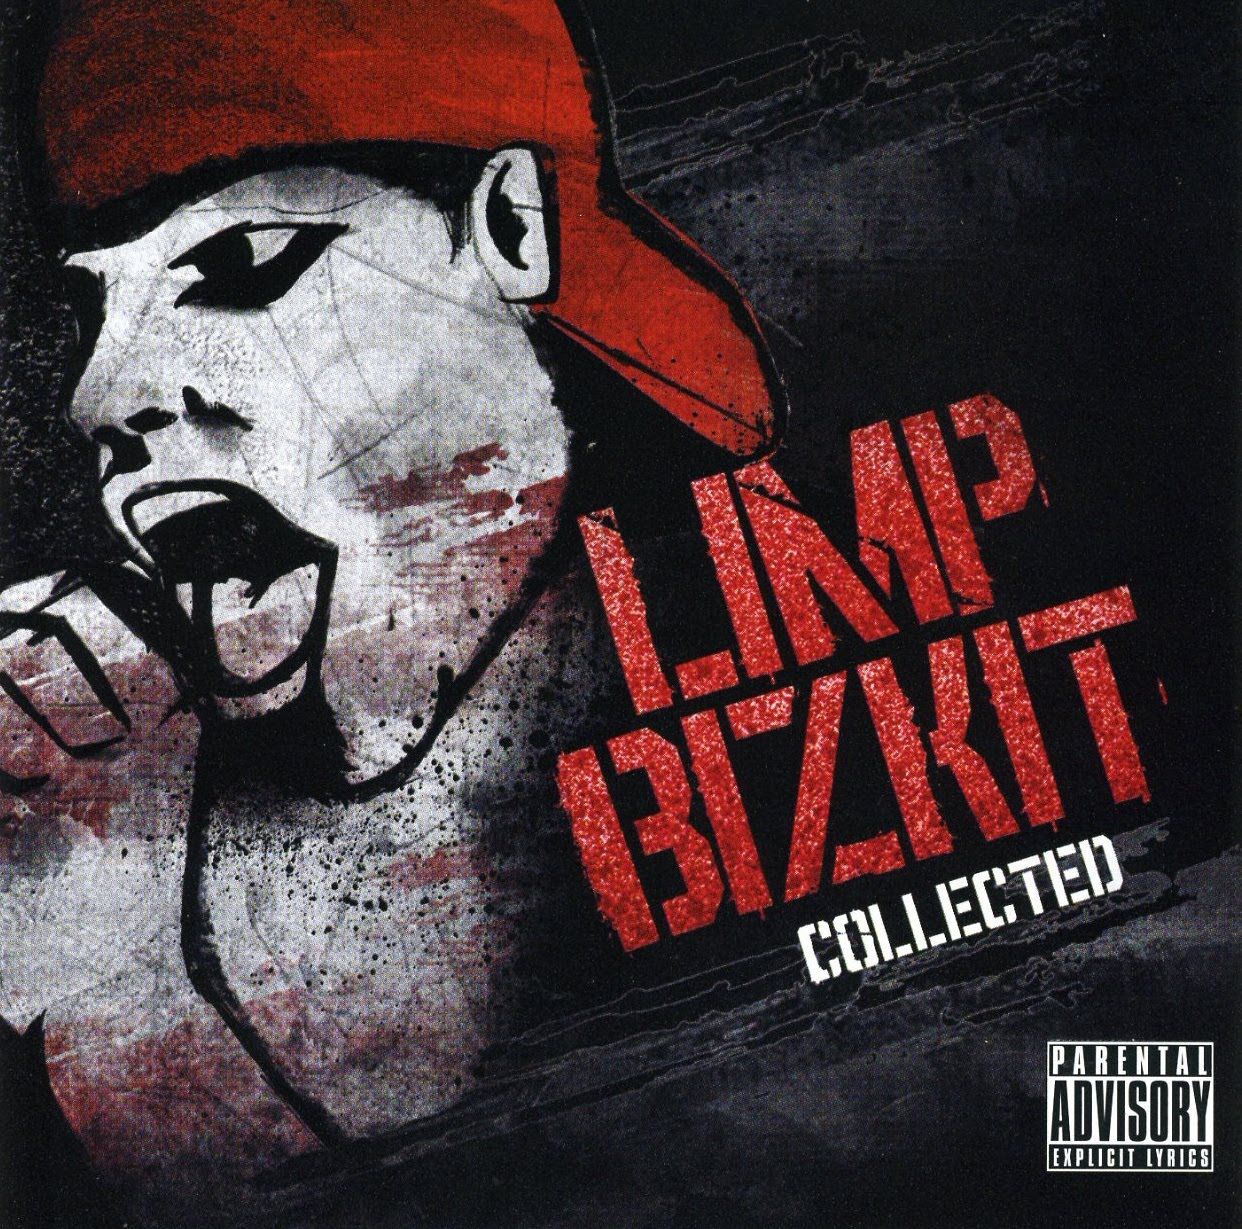 an introduction to the analysis of limp bizkit Provides selected links to content analysis and text analysis research examples and research papers dealing an introduction to the analysis of dreams with different topics 01, lts 01 e 02 - caixa postal 06 - plano diretor norte - cep.